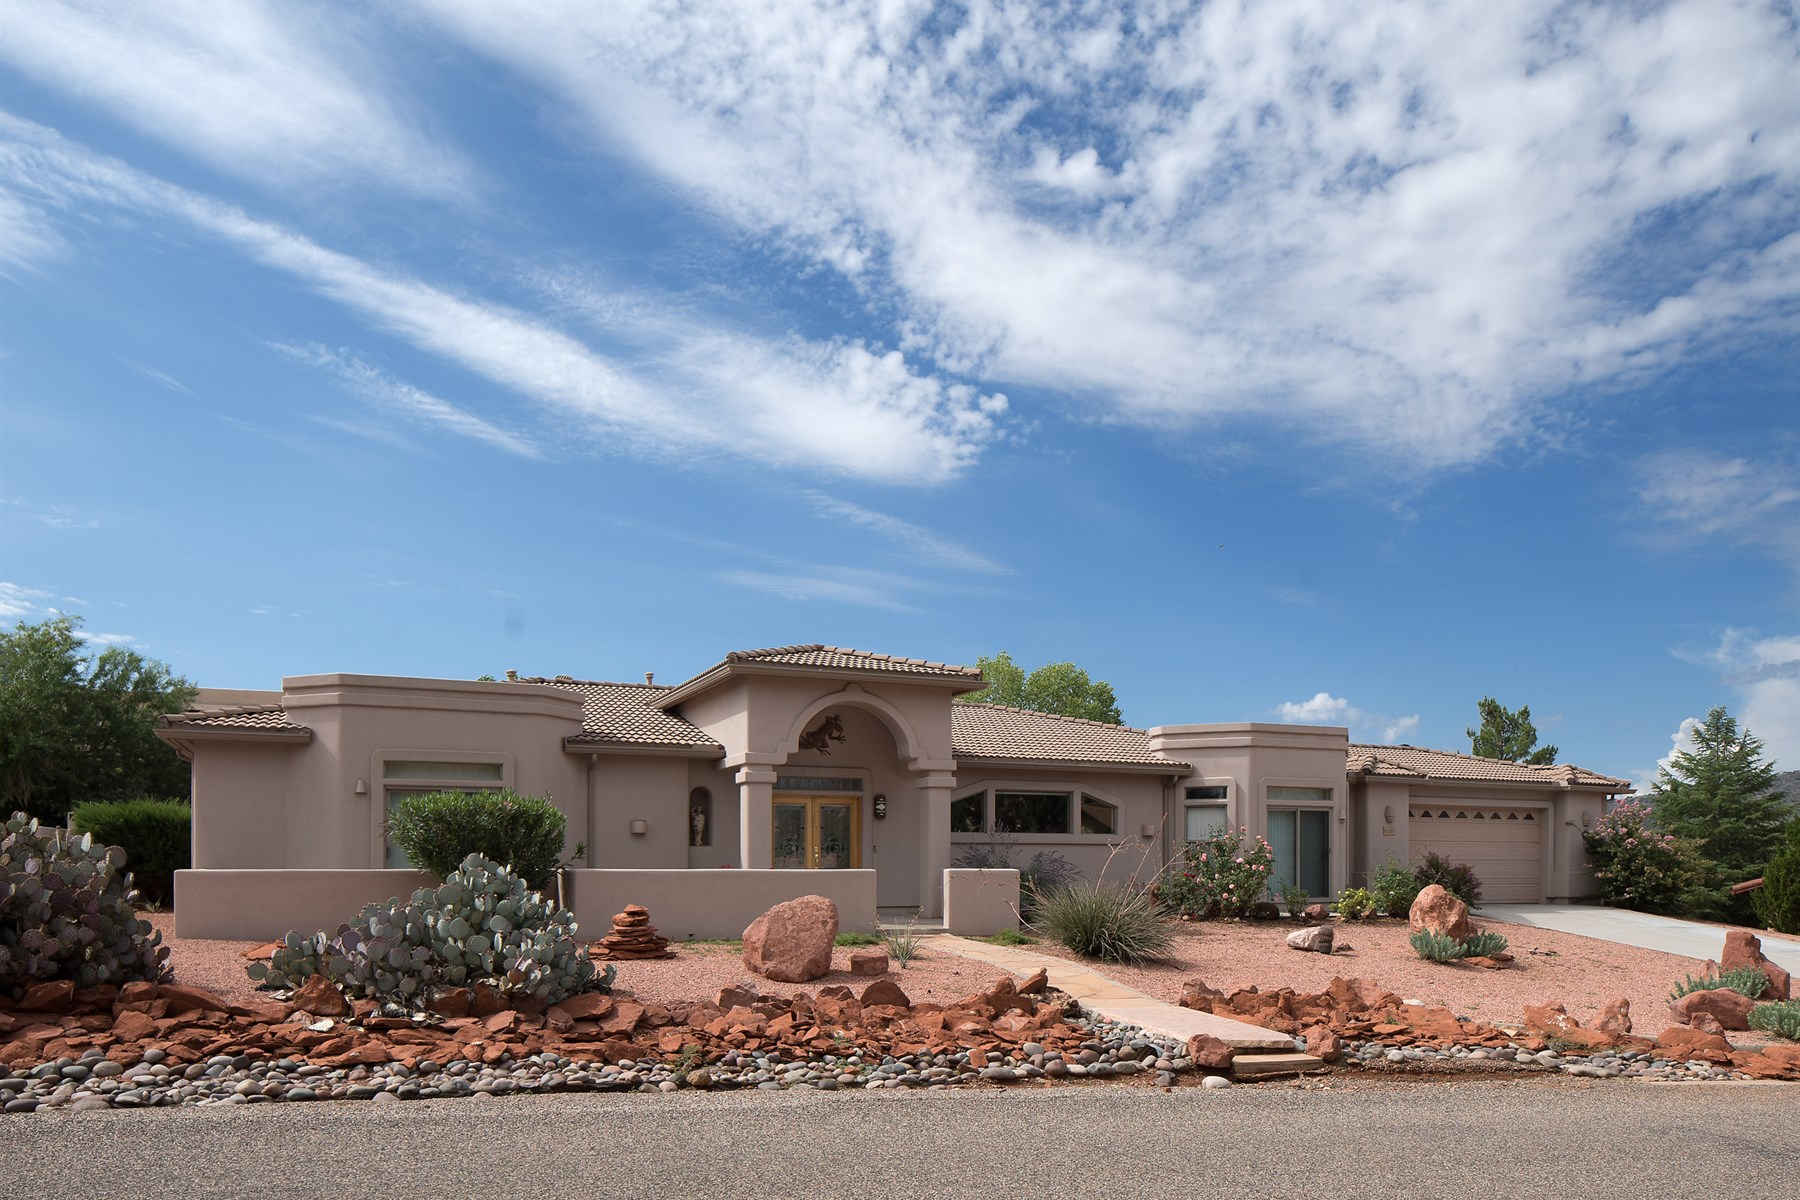 Single Family Home for Sale at Beautiful single level custom built home 285 Concho Drive Sedona, Arizona, 86351 United States